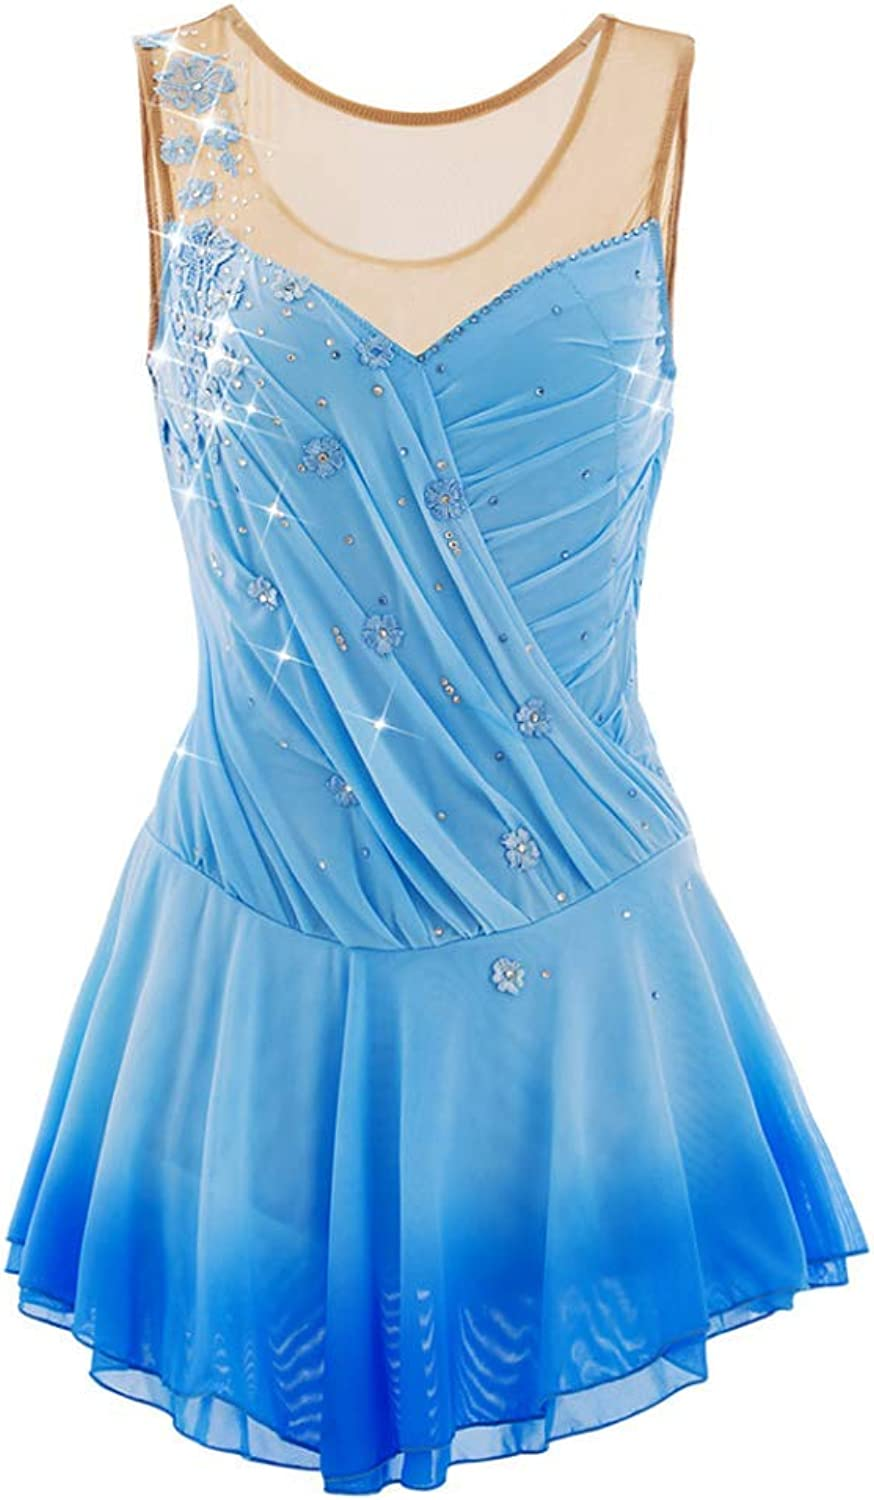 YunNR Adult Professional Figure Skating Performance Clothing Sleeveless bluee Gradient Skirt Simple Handmade Ice Skating Dress for women Kid Leotard Dresses